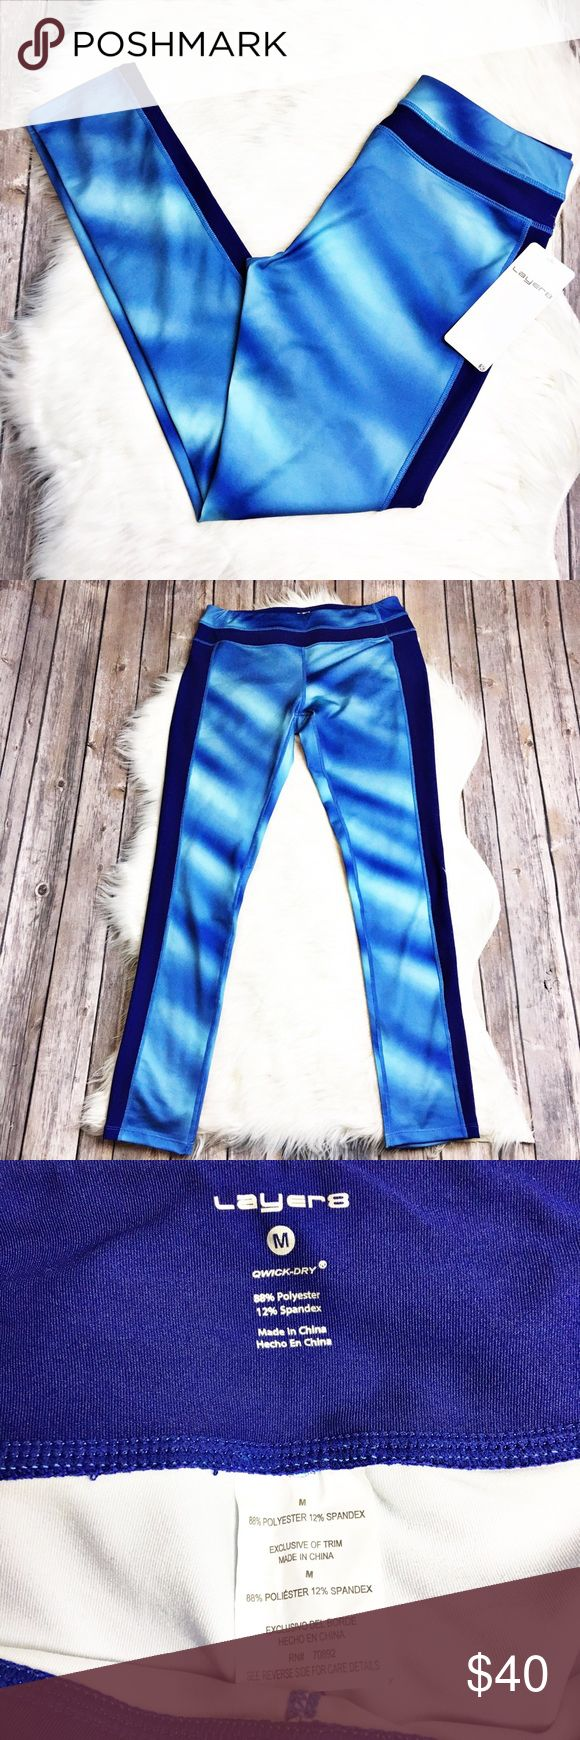 """Layer 8 Workout Pants Gorgeous blue ombré workout pants by Layer 8.  NWT.  Material is 88% polyester and 12% spandex.  Measurements laid flat: waist 14.5"""", hip 17.5"""" and inseam 28.5"""". Layer 8 Pants Leggings"""